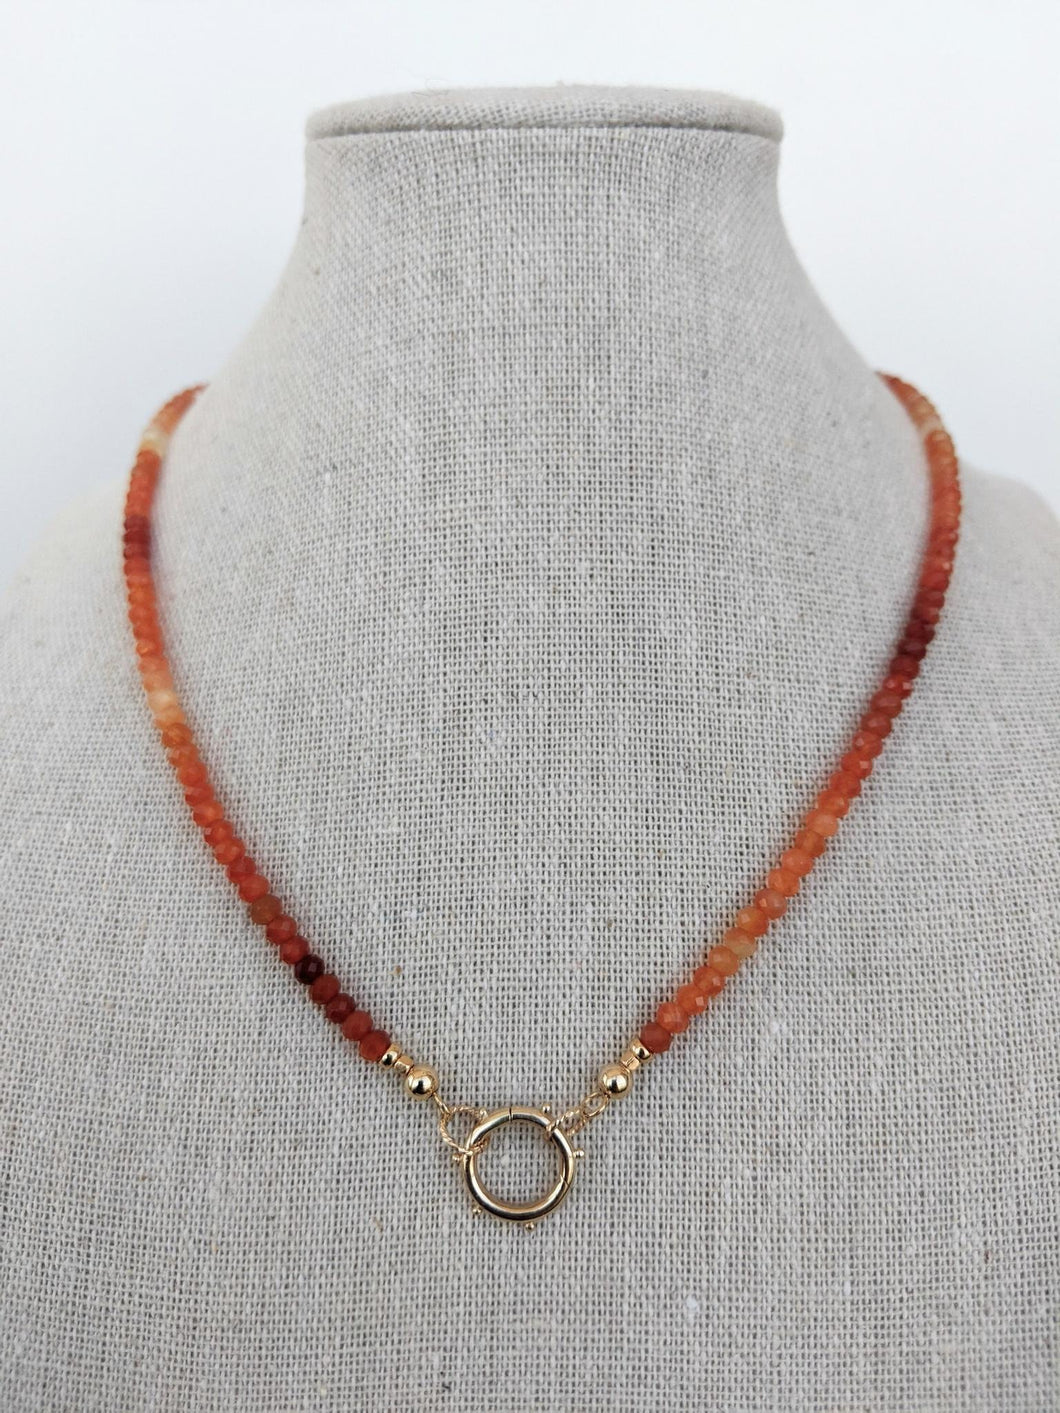 Open Loop Ombré Carnelian Necklace